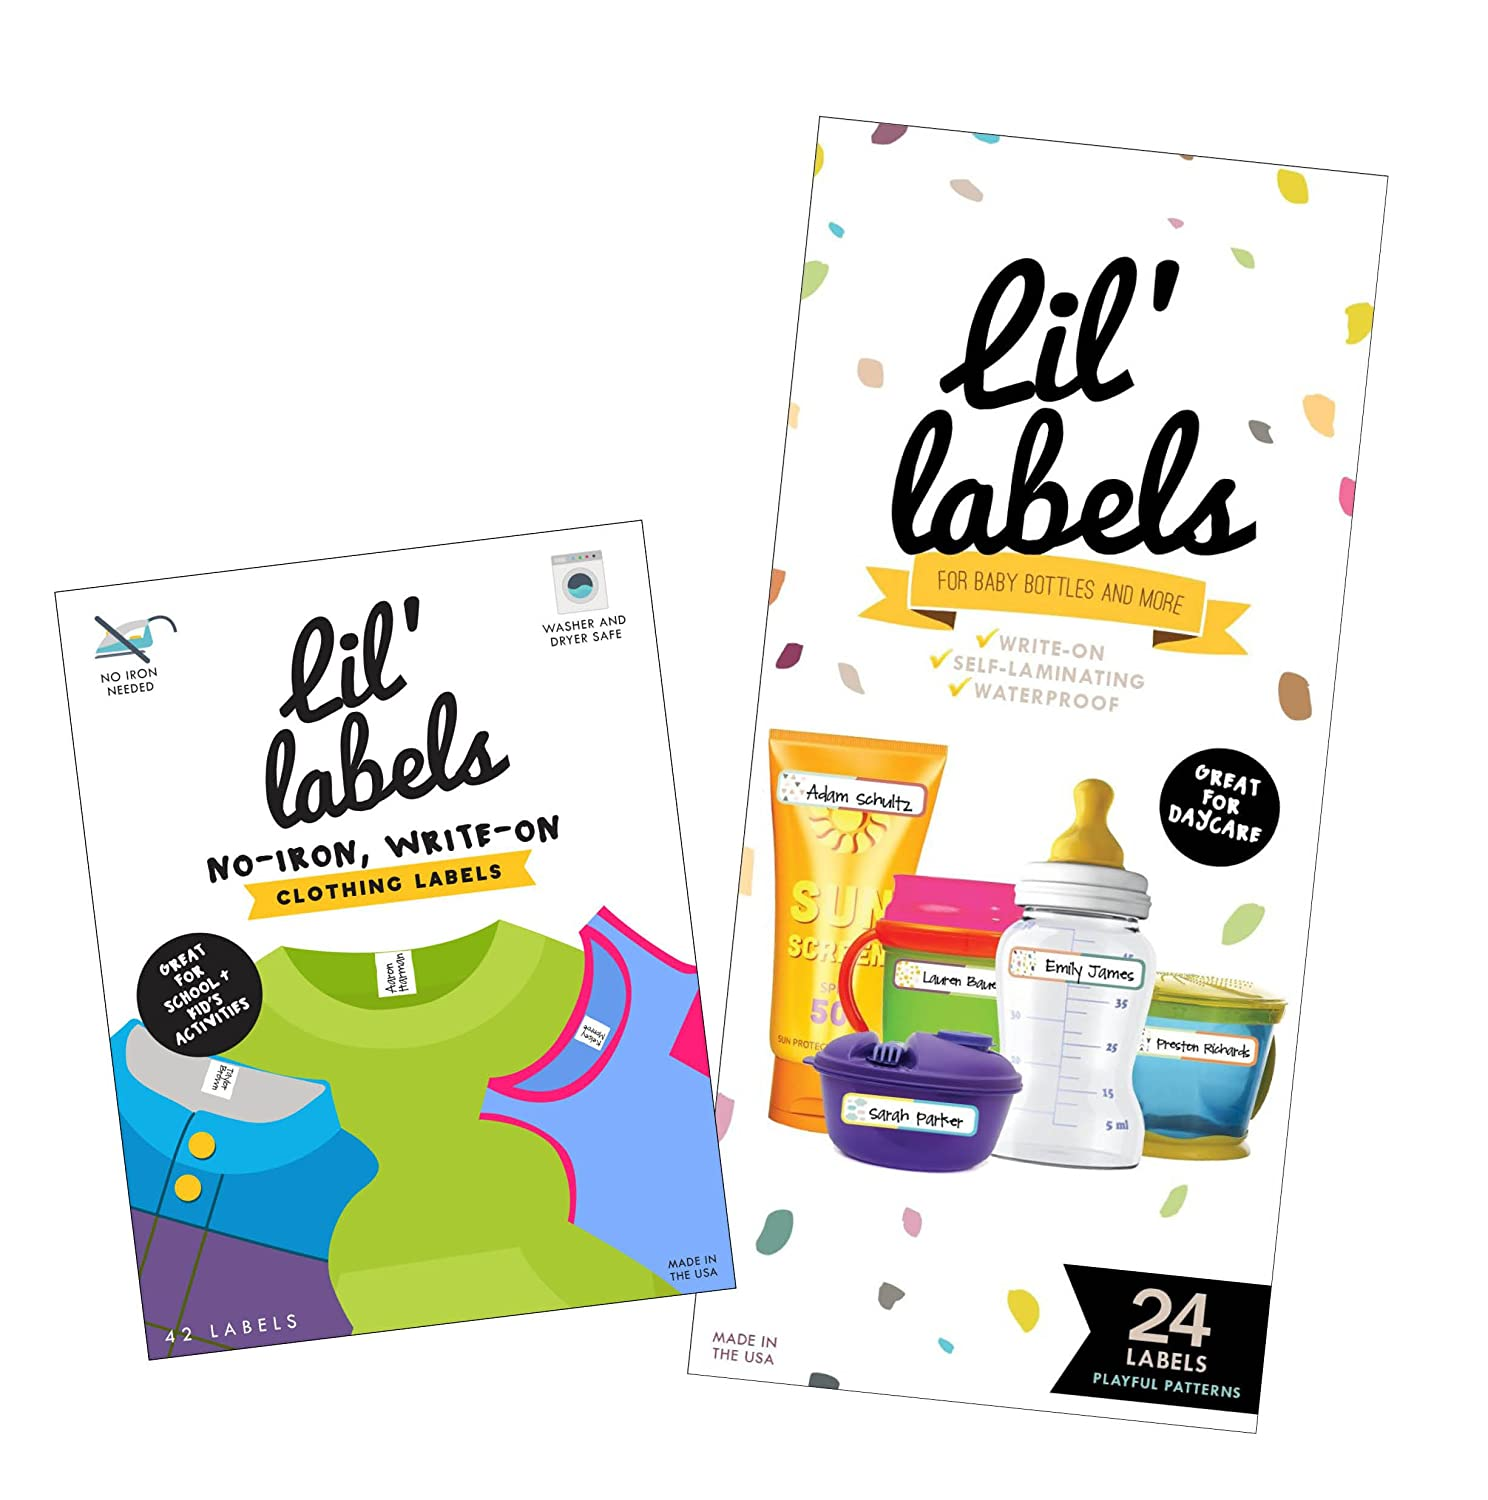 Lil' Labels Daycare Value Pack Write on Name Labels, Waterproof, Baby Bottle Labels (Playful Patterns) & Clothing Labels, Plus 2 Bonus Gifts, Bright White